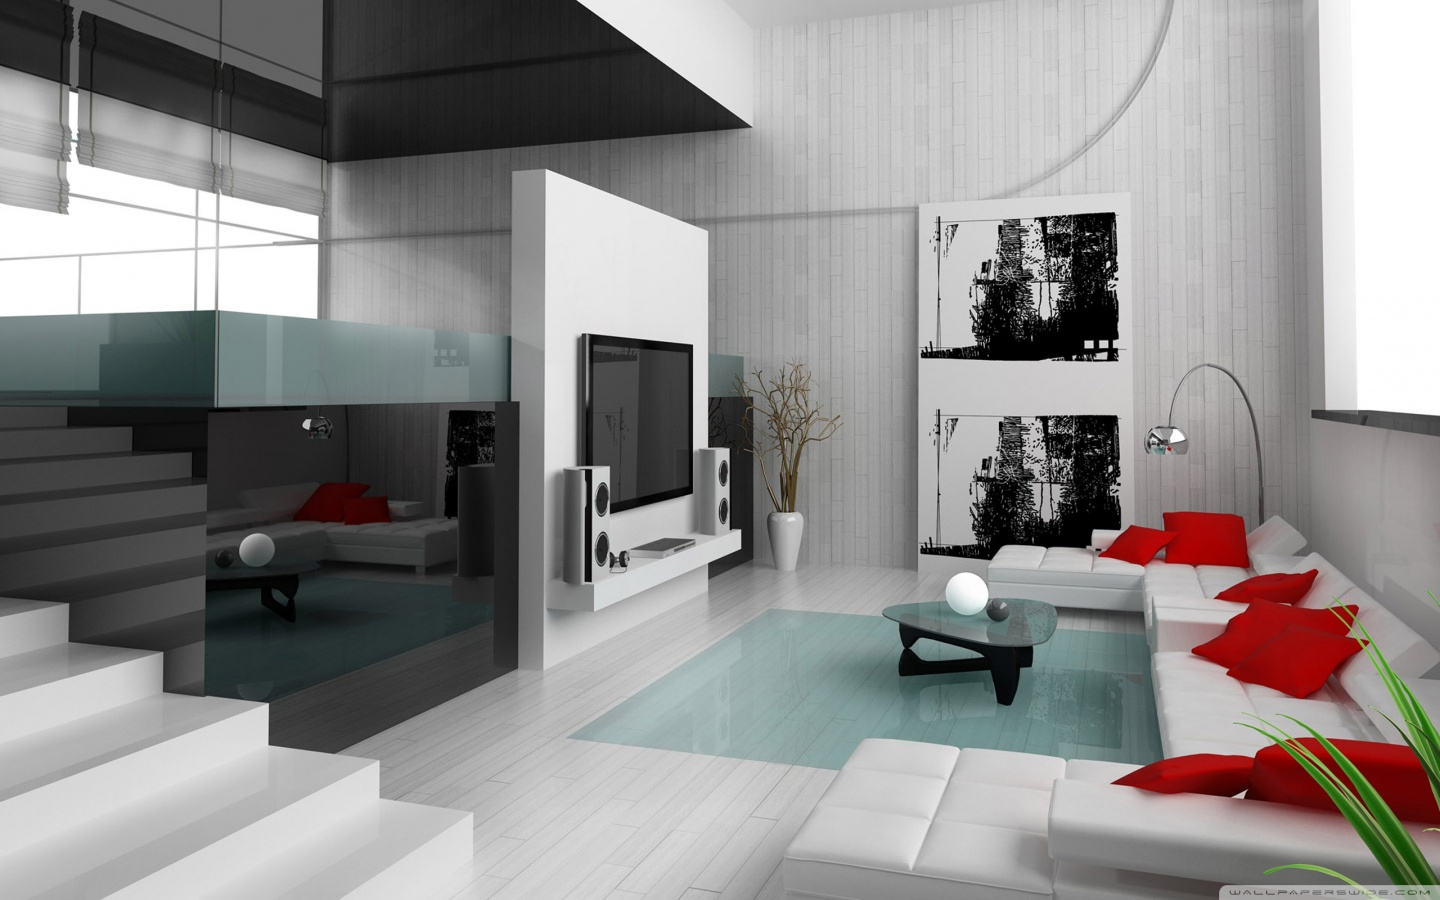 Minimalist interior design imagination art architecture - Home decor with interior design ...